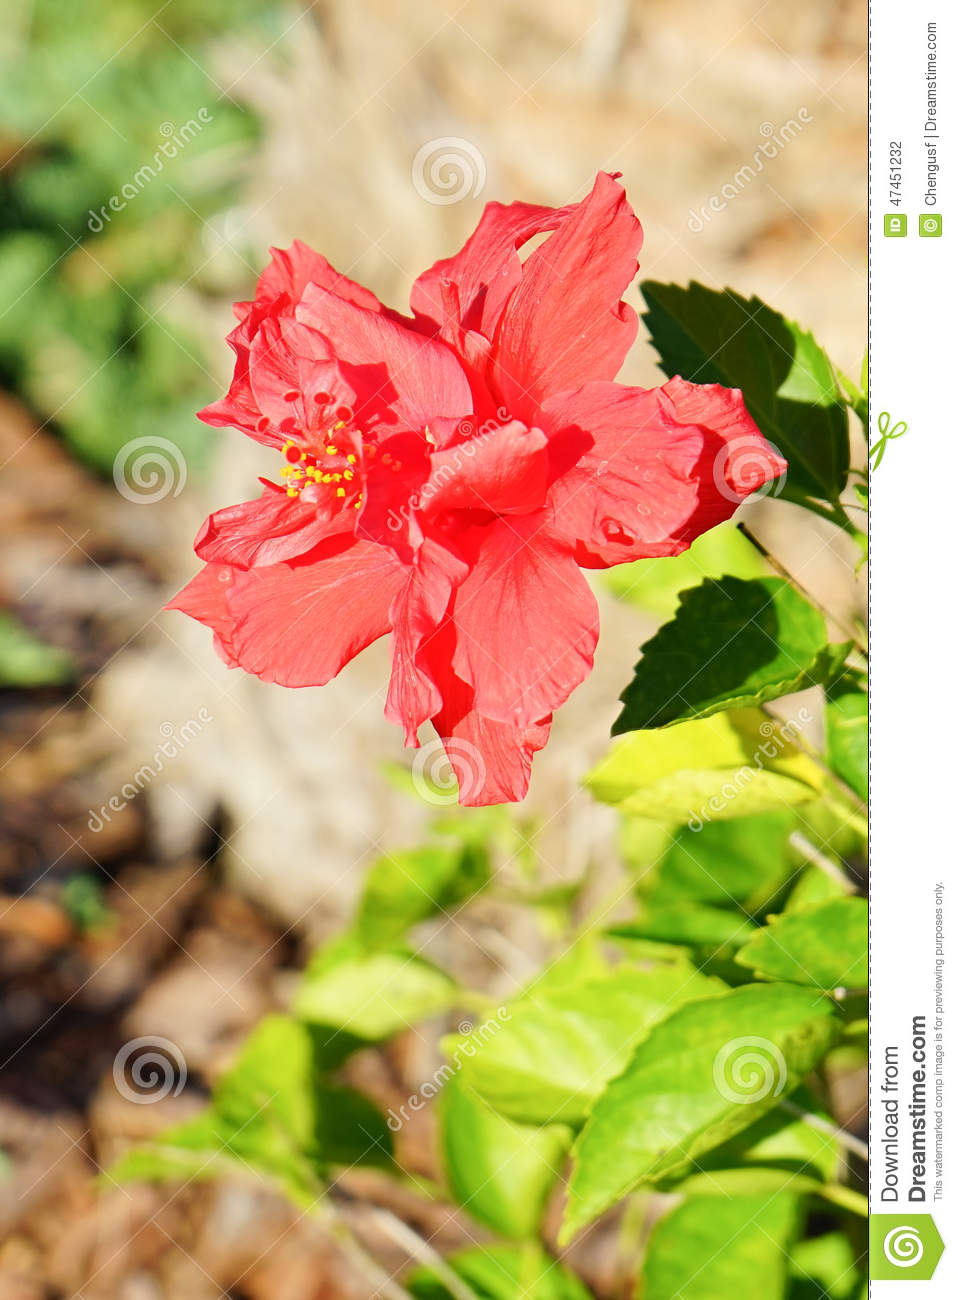 Not red asian flower very valuable